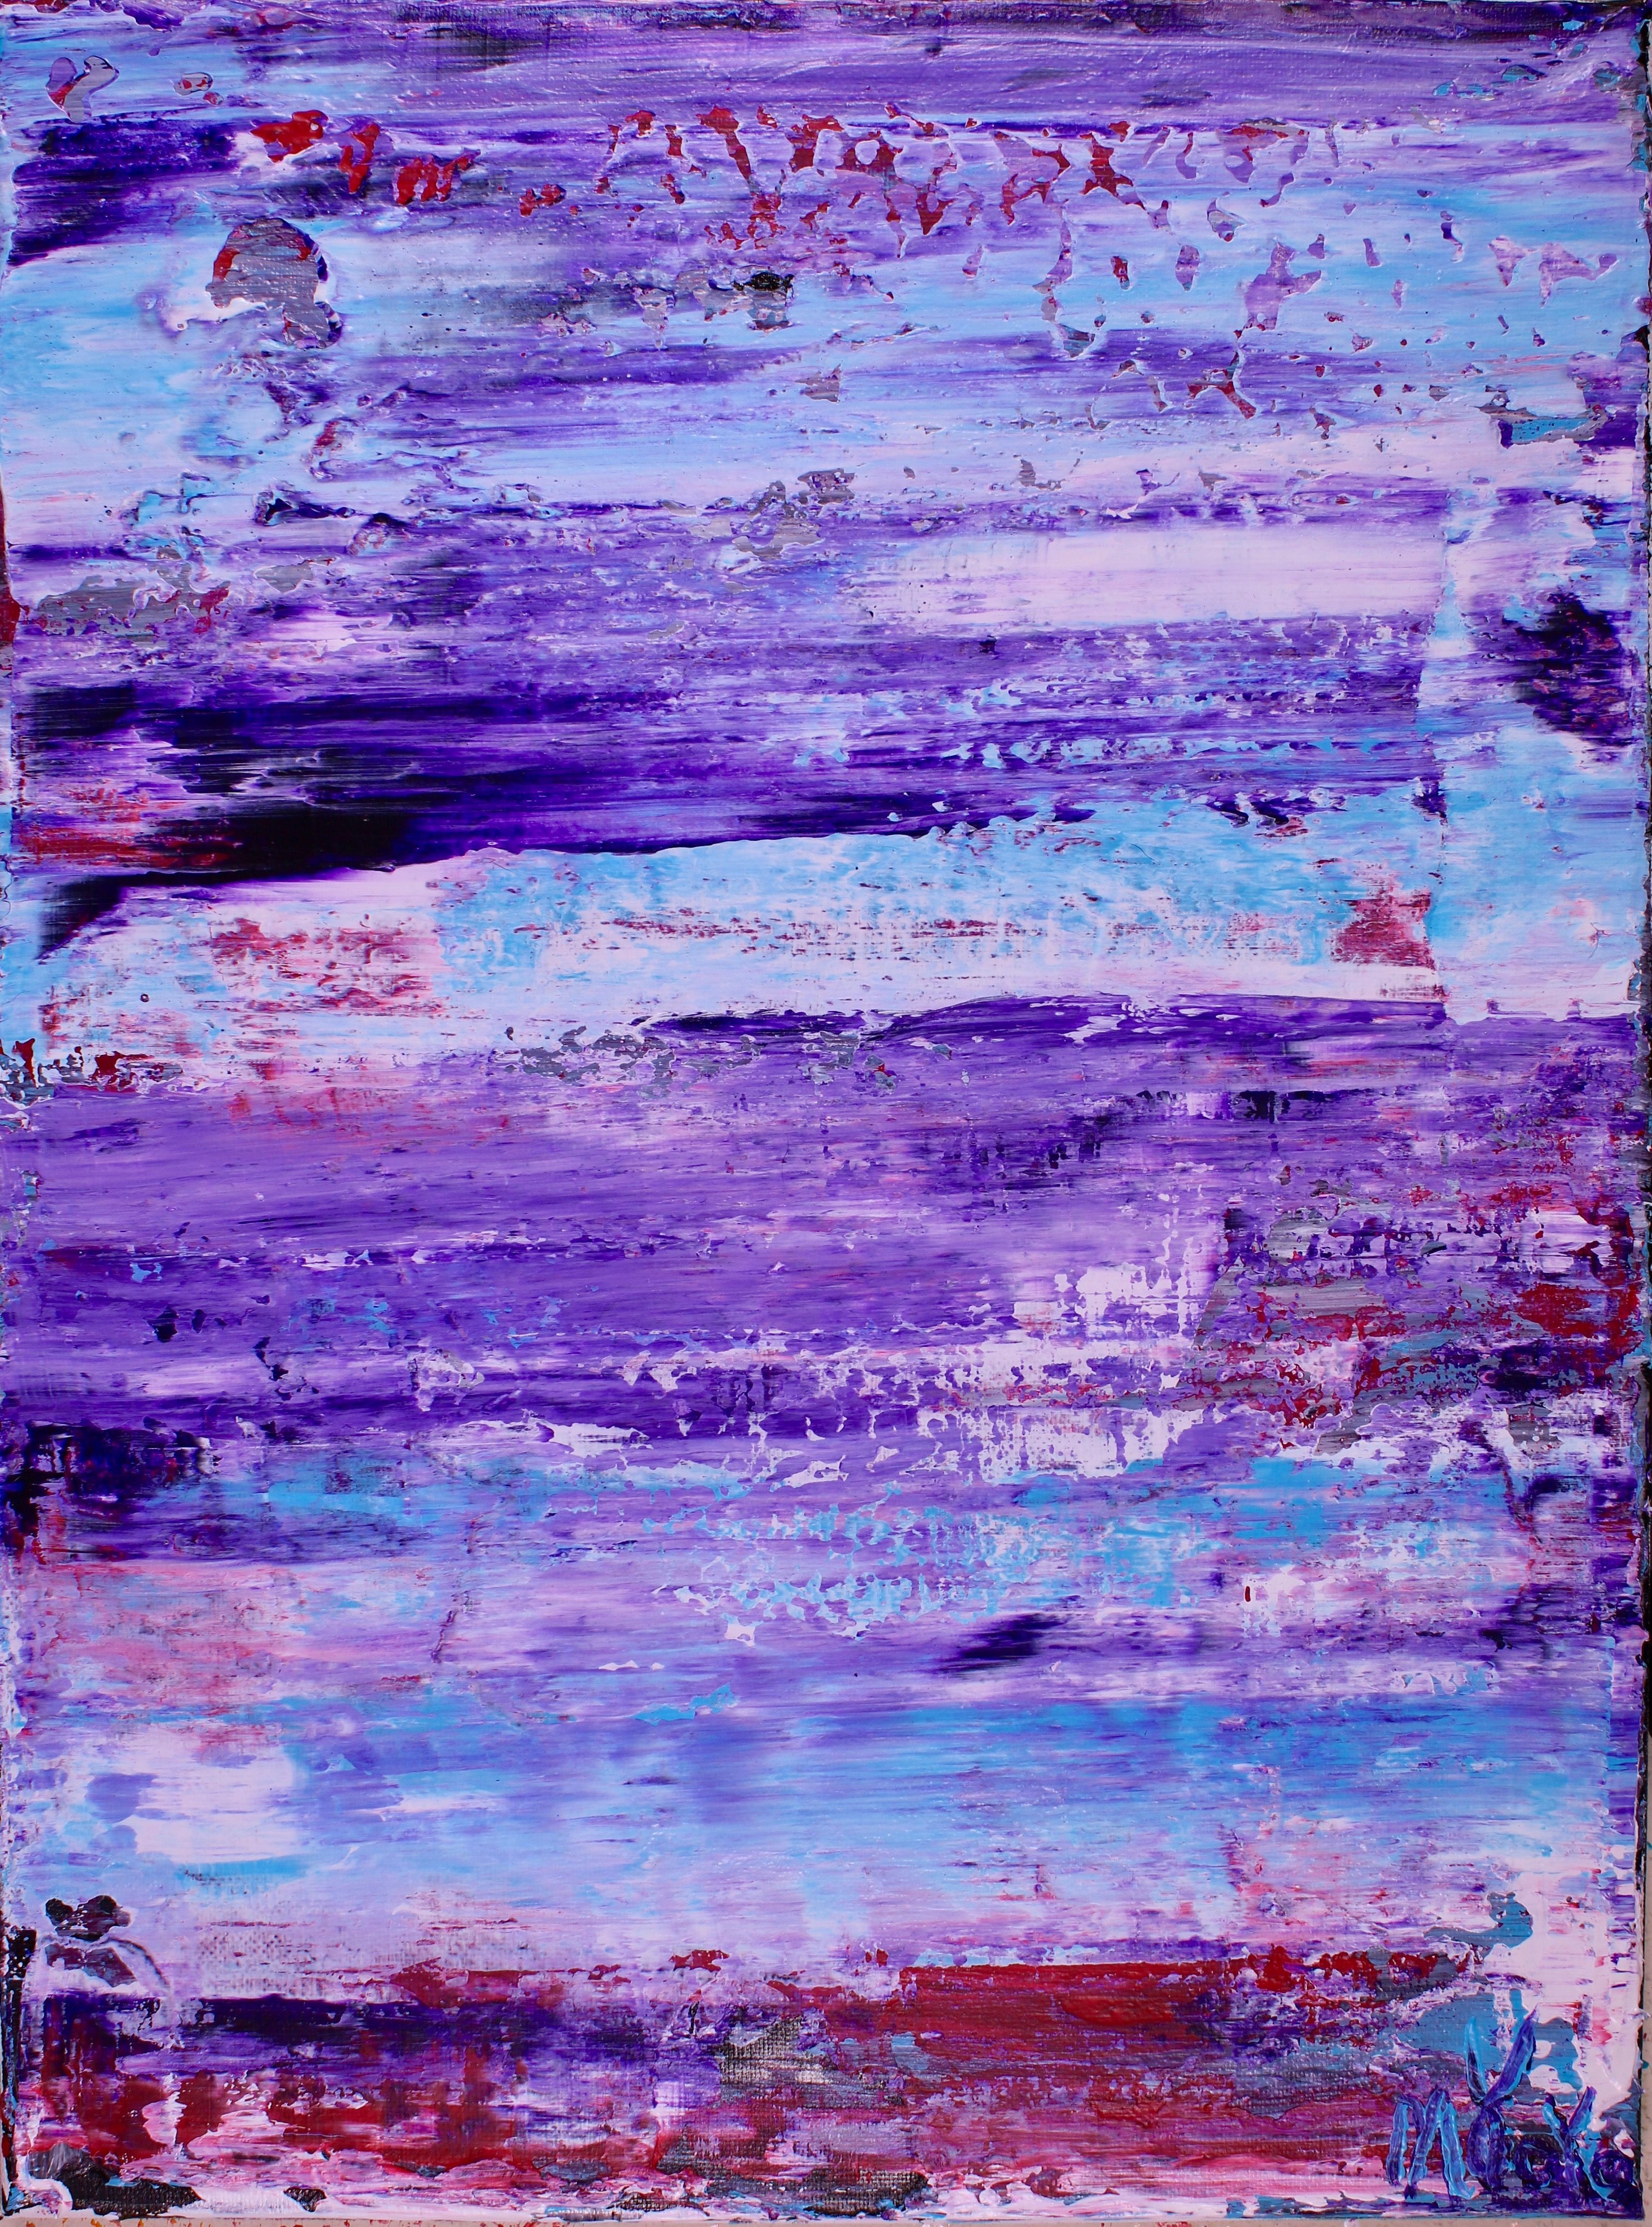 Purple Eclipse 2 Abstract Abstract Art Landscape Purple Abstract